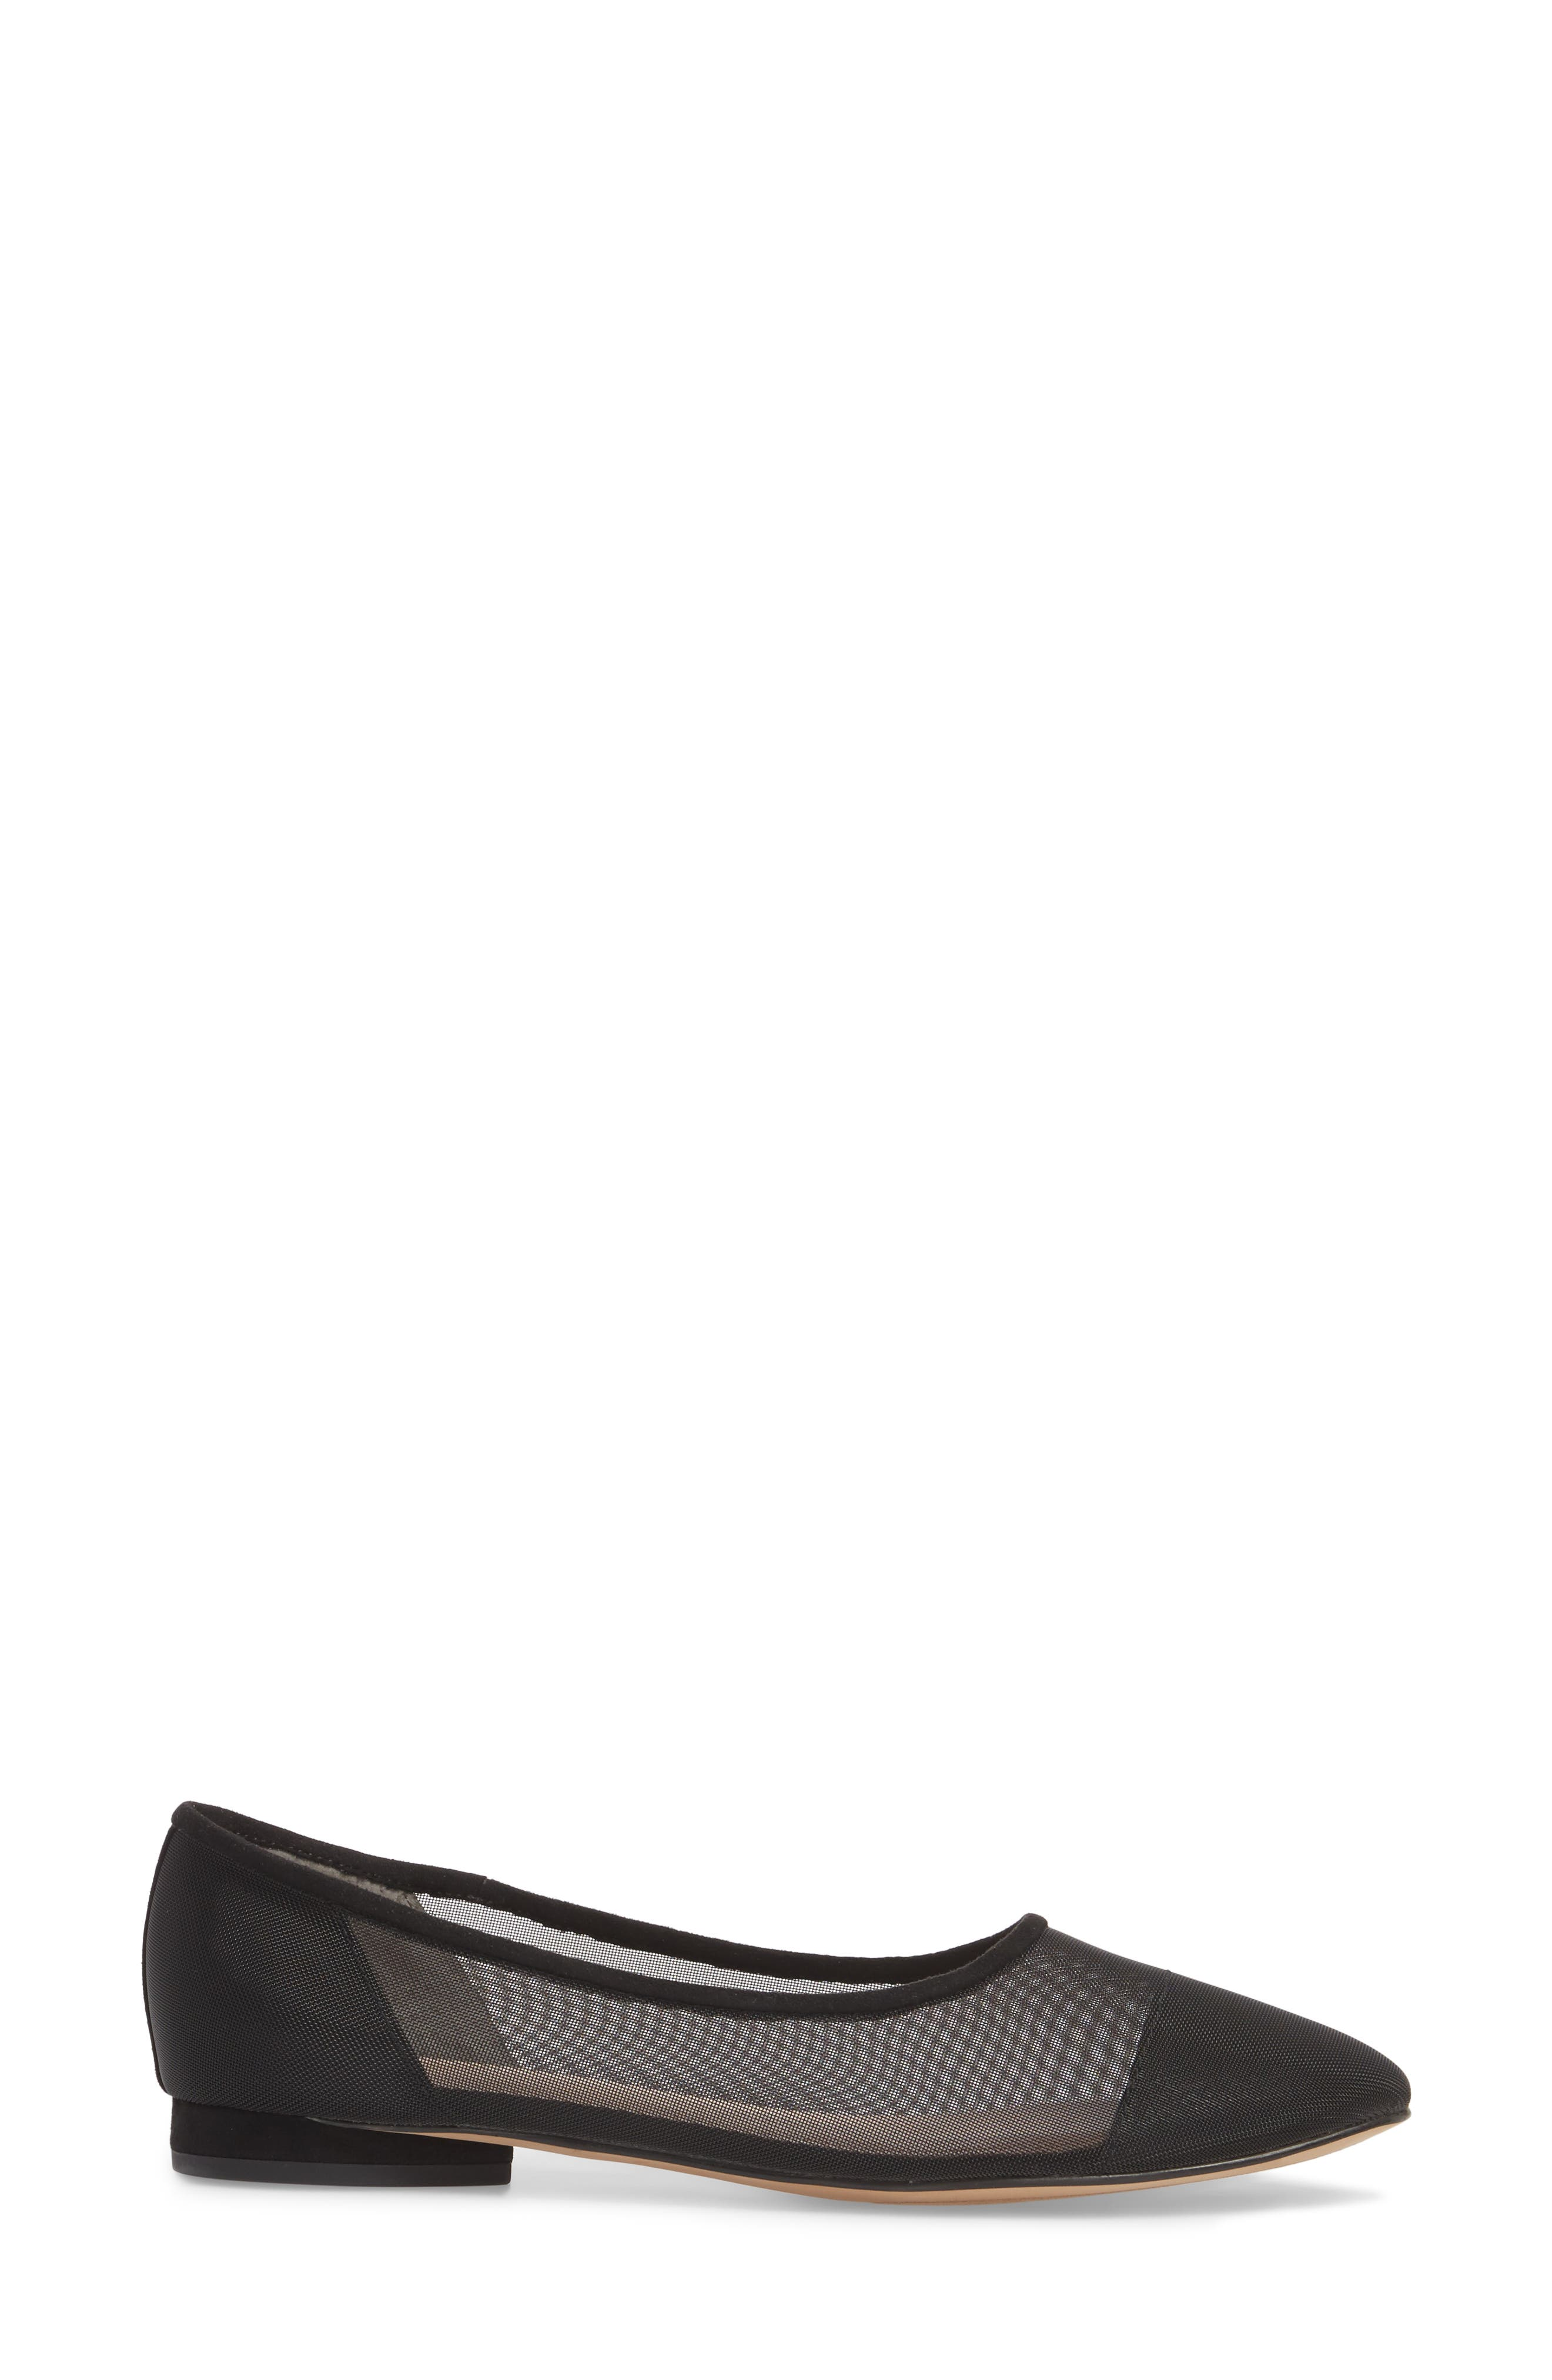 Marian Mesh Inset Flat,                             Alternate thumbnail 3, color,                             Black Suede